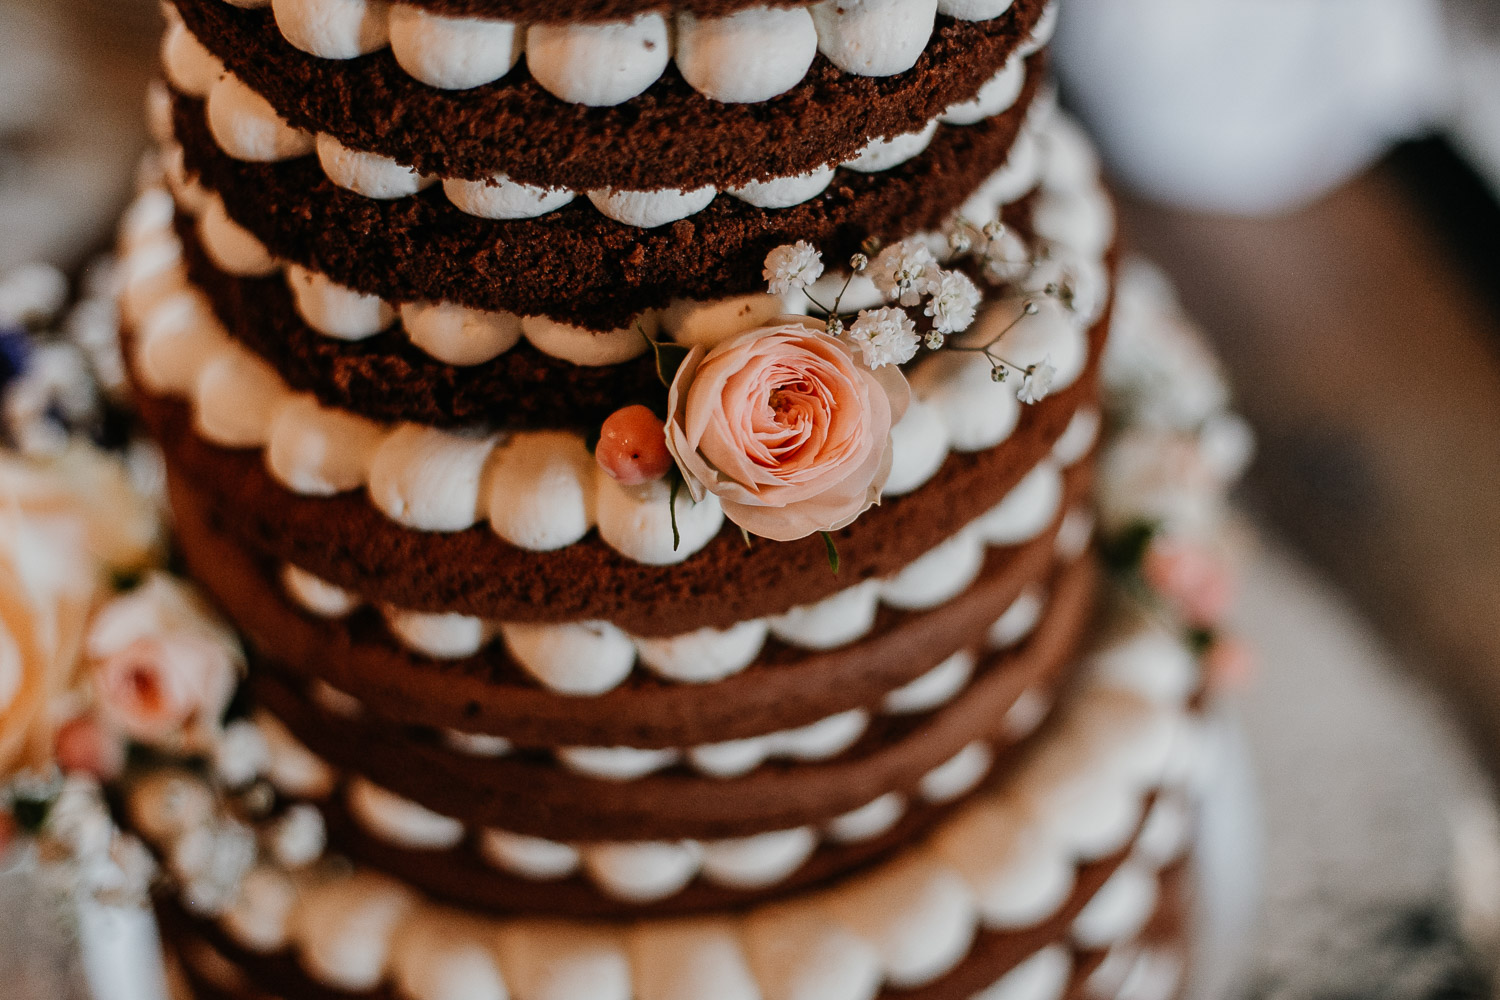 sweet table, sweettable, wedding cake, snack bar, krümelfee, cakes, kuchen, pop cakes, naked cake, sami naked cake, half naked cake